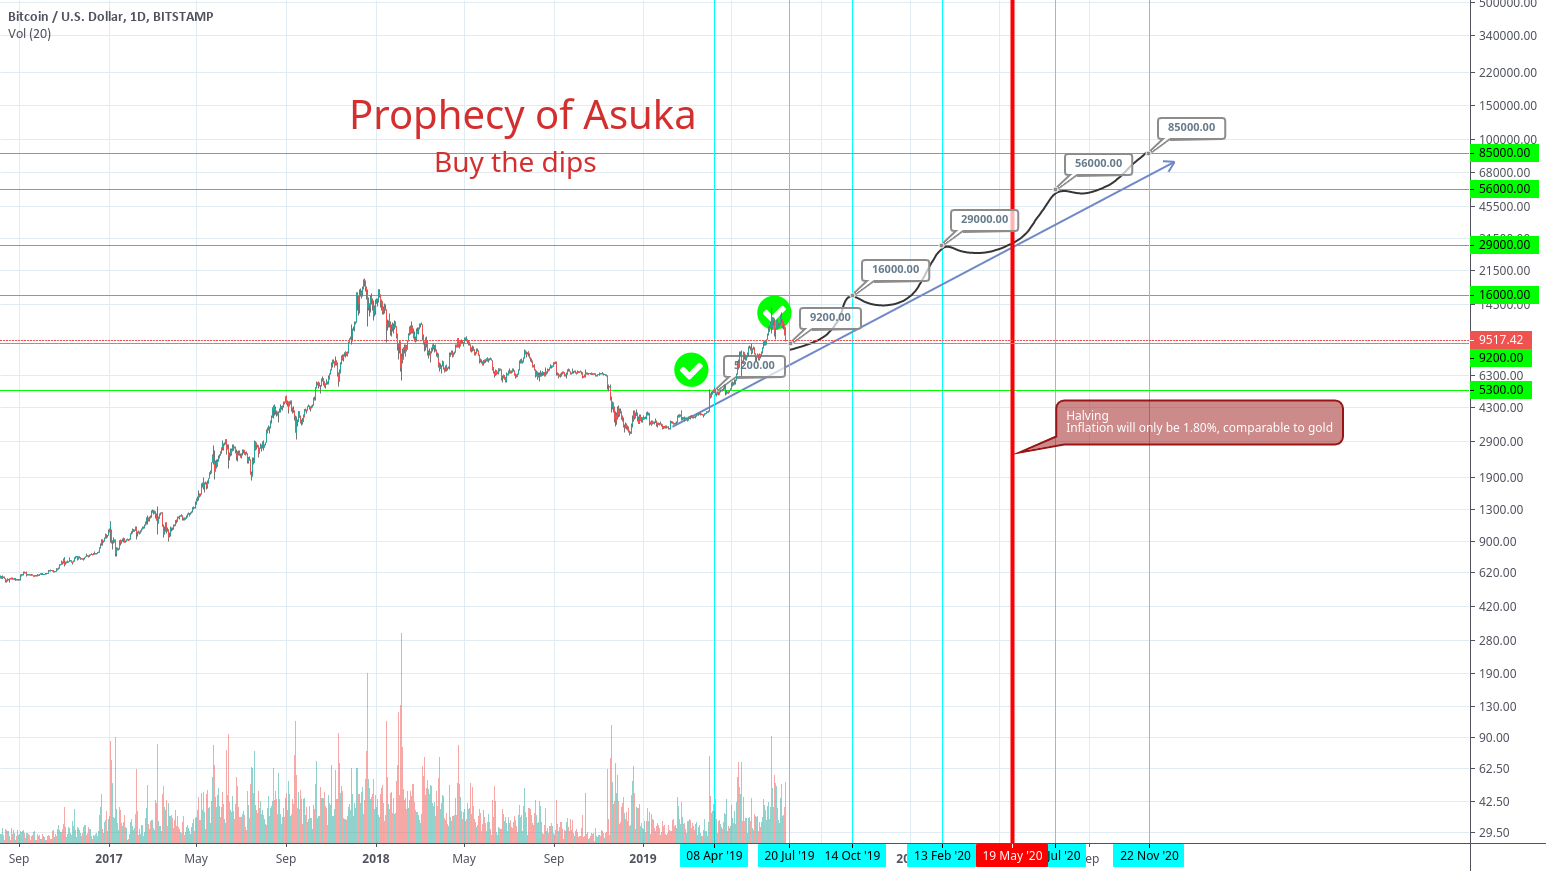 Prophecy of Asuka - 87000$ BTCUSD next July for BITSTAMP